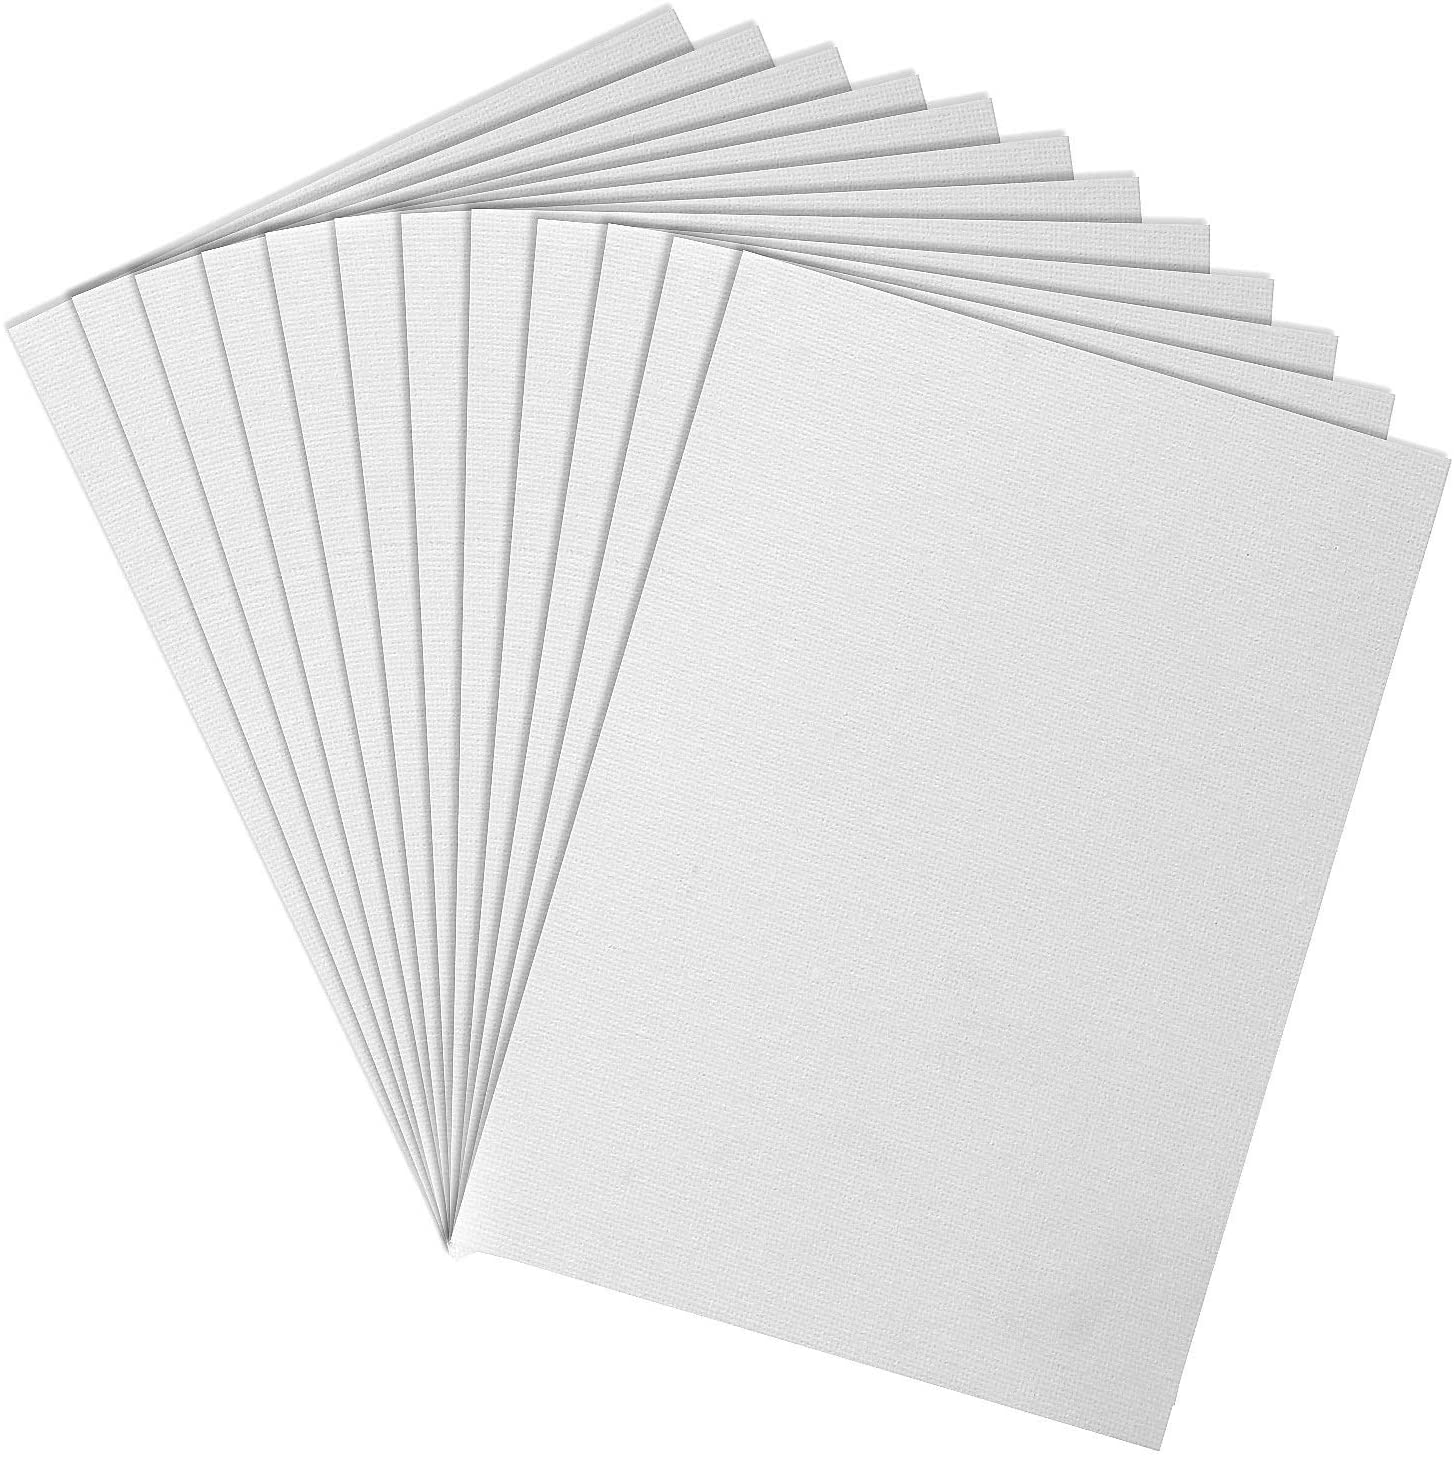 LANIAKEA Painting Canvas Panels Boards 5x7 Inch Art Canvas 12 Pack Mini Canvases Artist Canvas Boards White Blank Canvas Panels for Painting